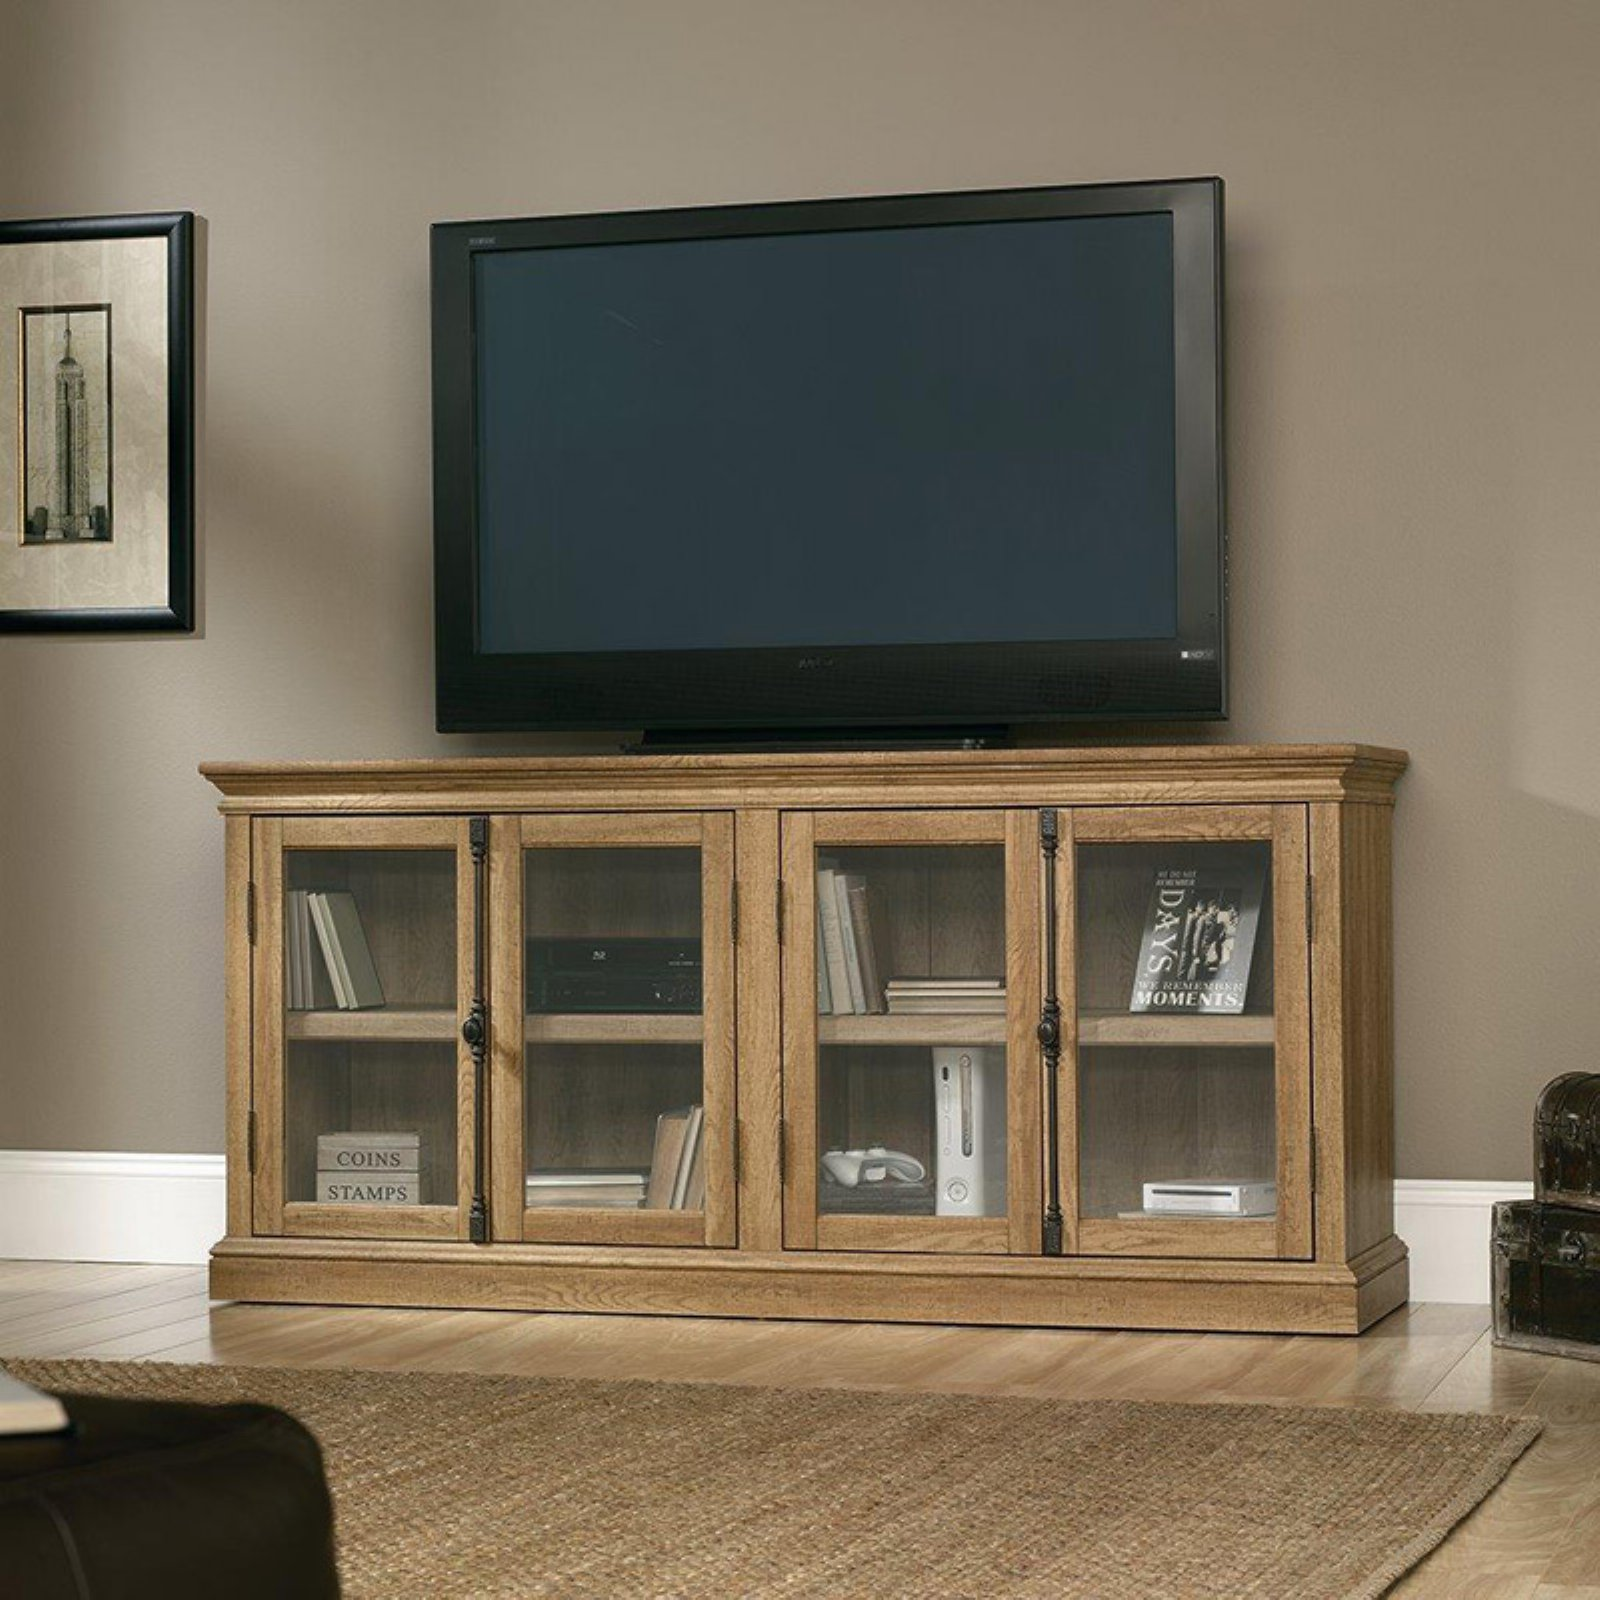 Sauder Barrister Lane Storage Credenza TV Stand Scribed Oak by Sauder